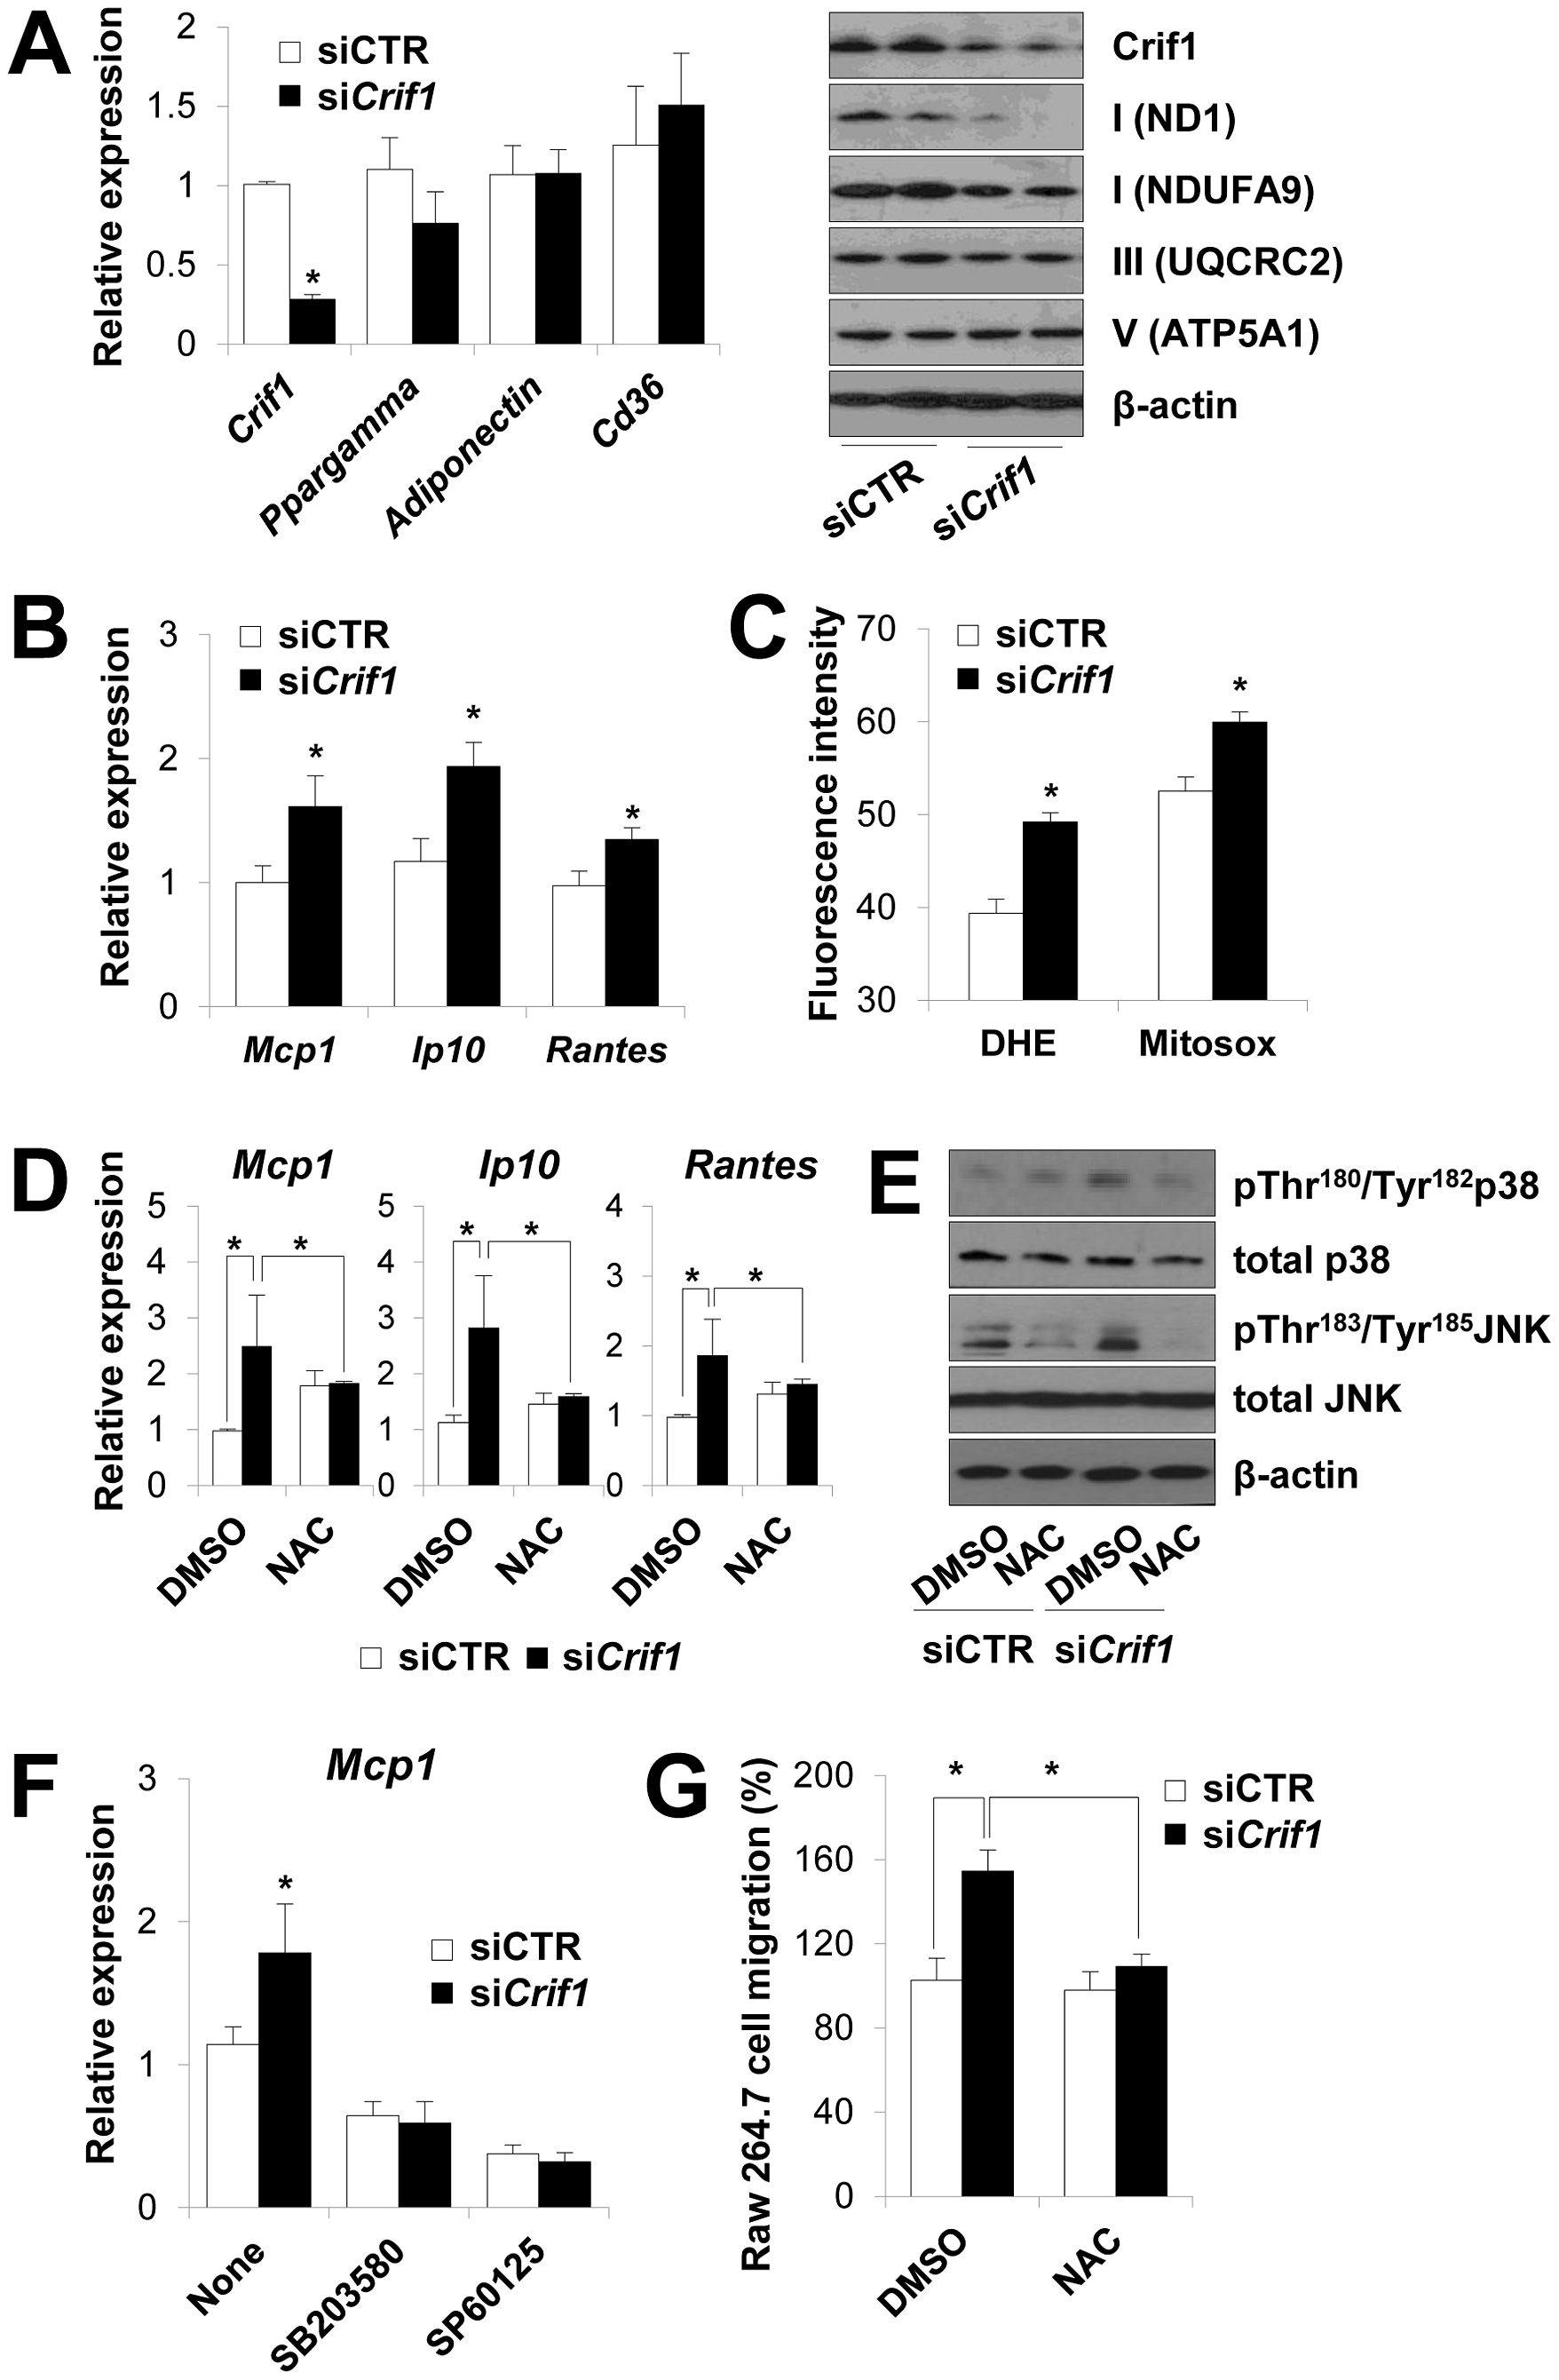 Dysregulation of chemokines and activation of stress kinases in <i>Crif1</i>-deficient 3T3-L1 adipocytes.